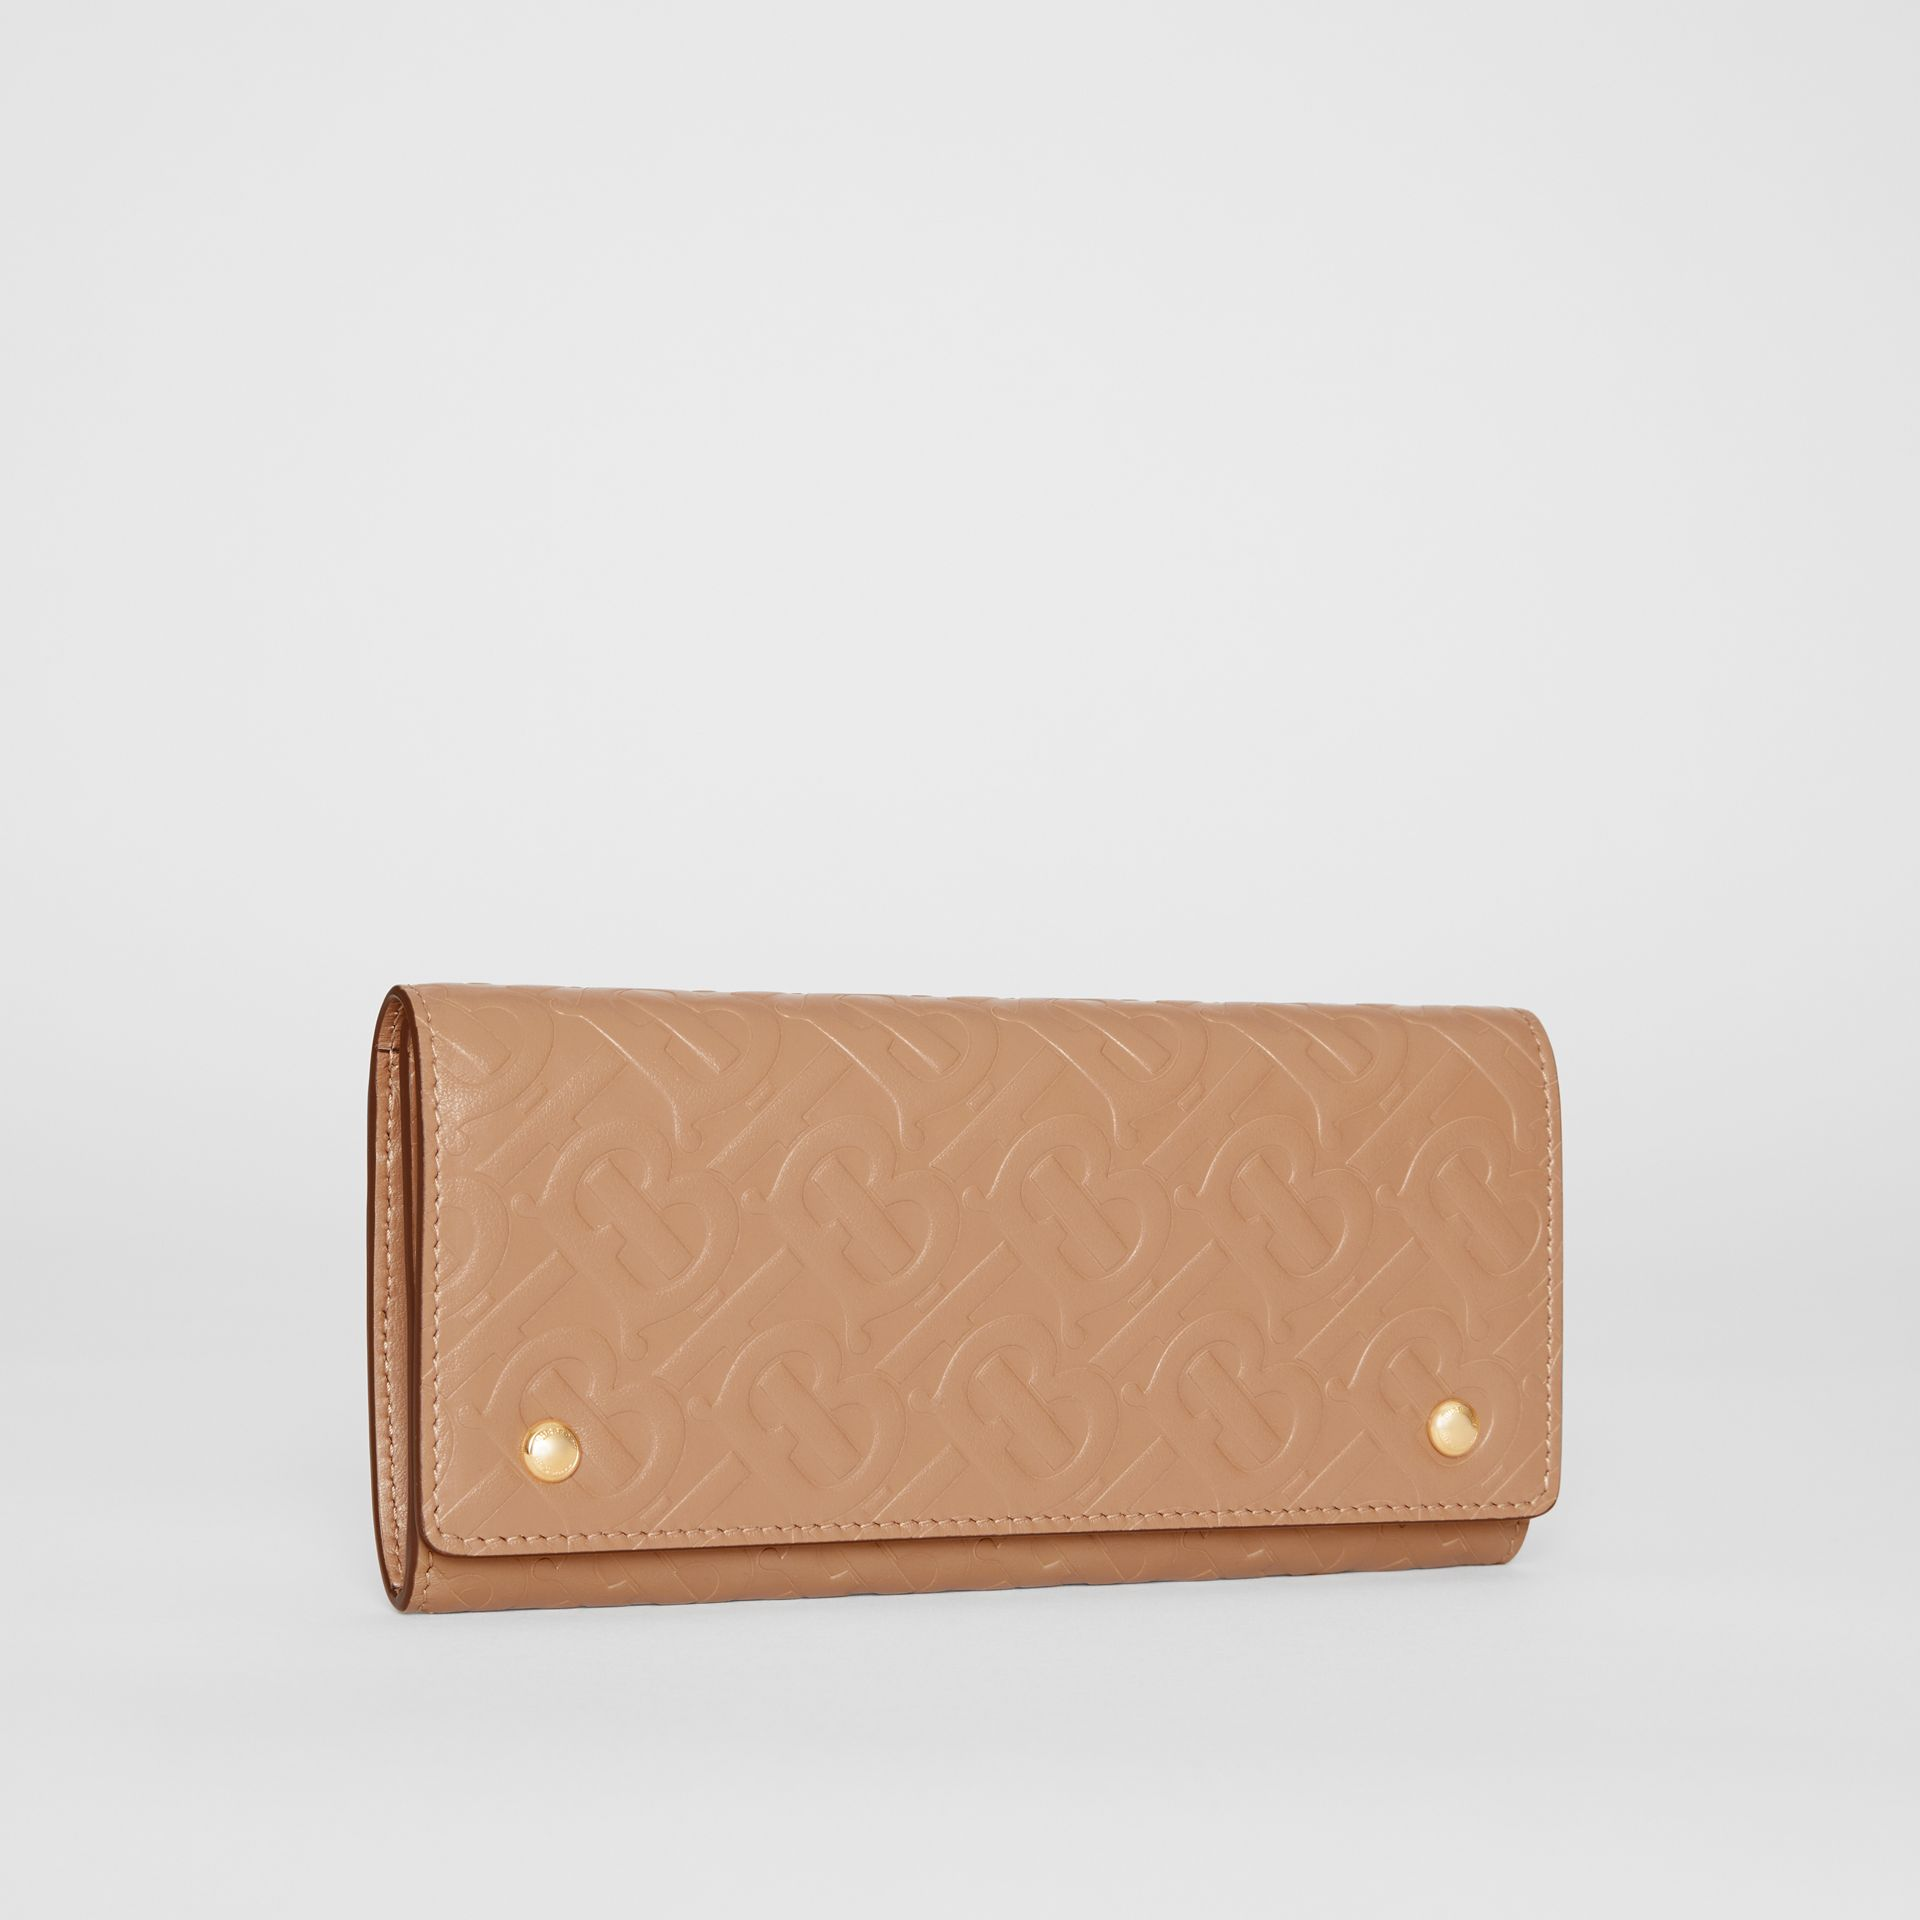 Monogram Leather Continental Wallet in Light Camel - Women | Burberry Hong Kong - gallery image 4